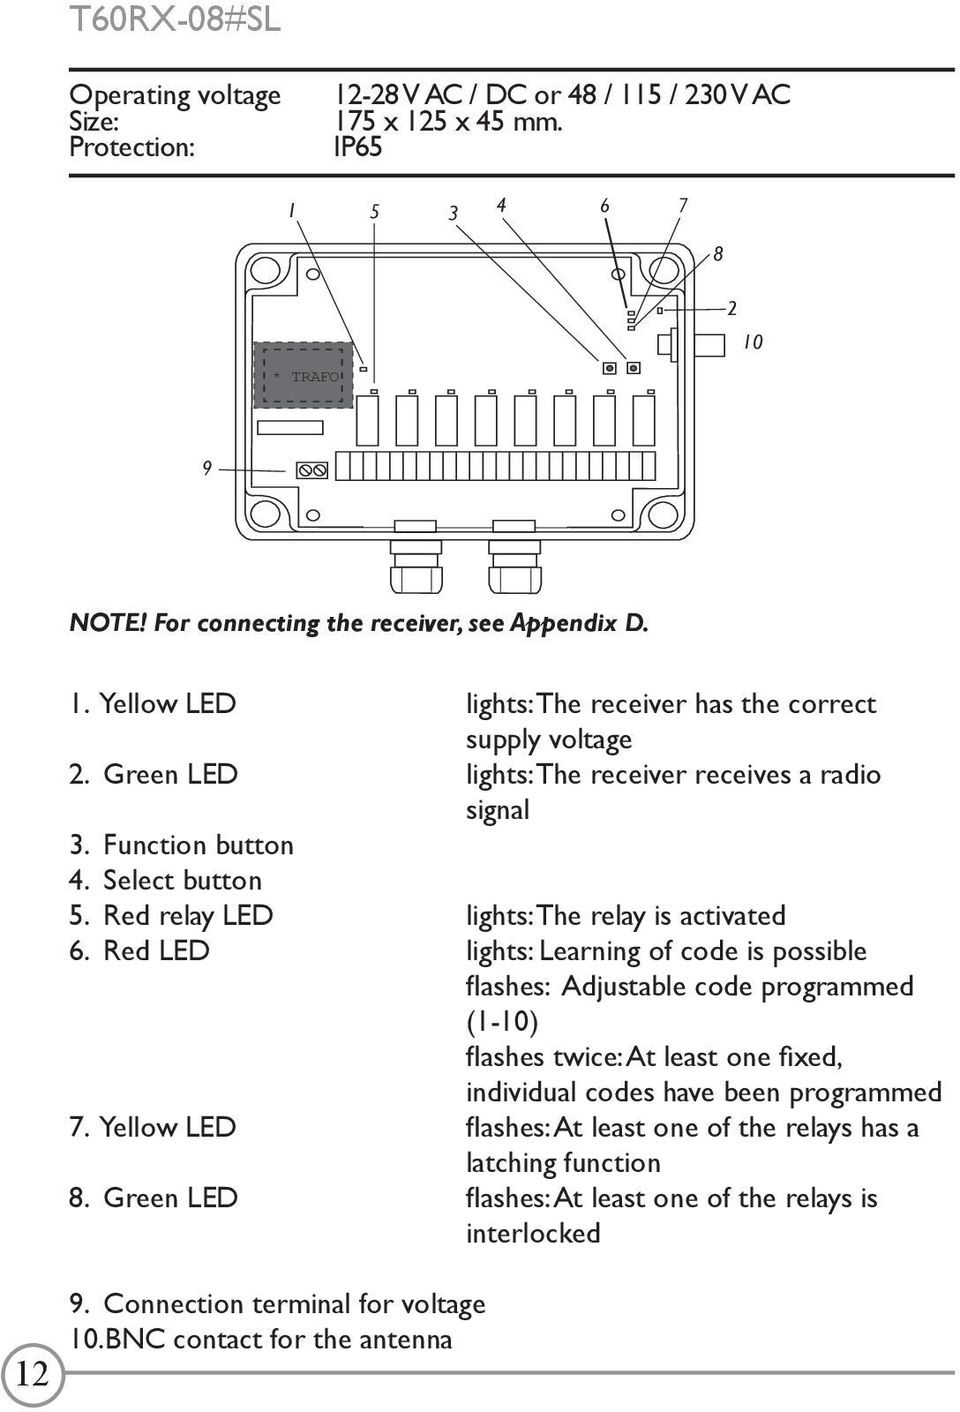 Red relay LED lights: The relay is activated 6.